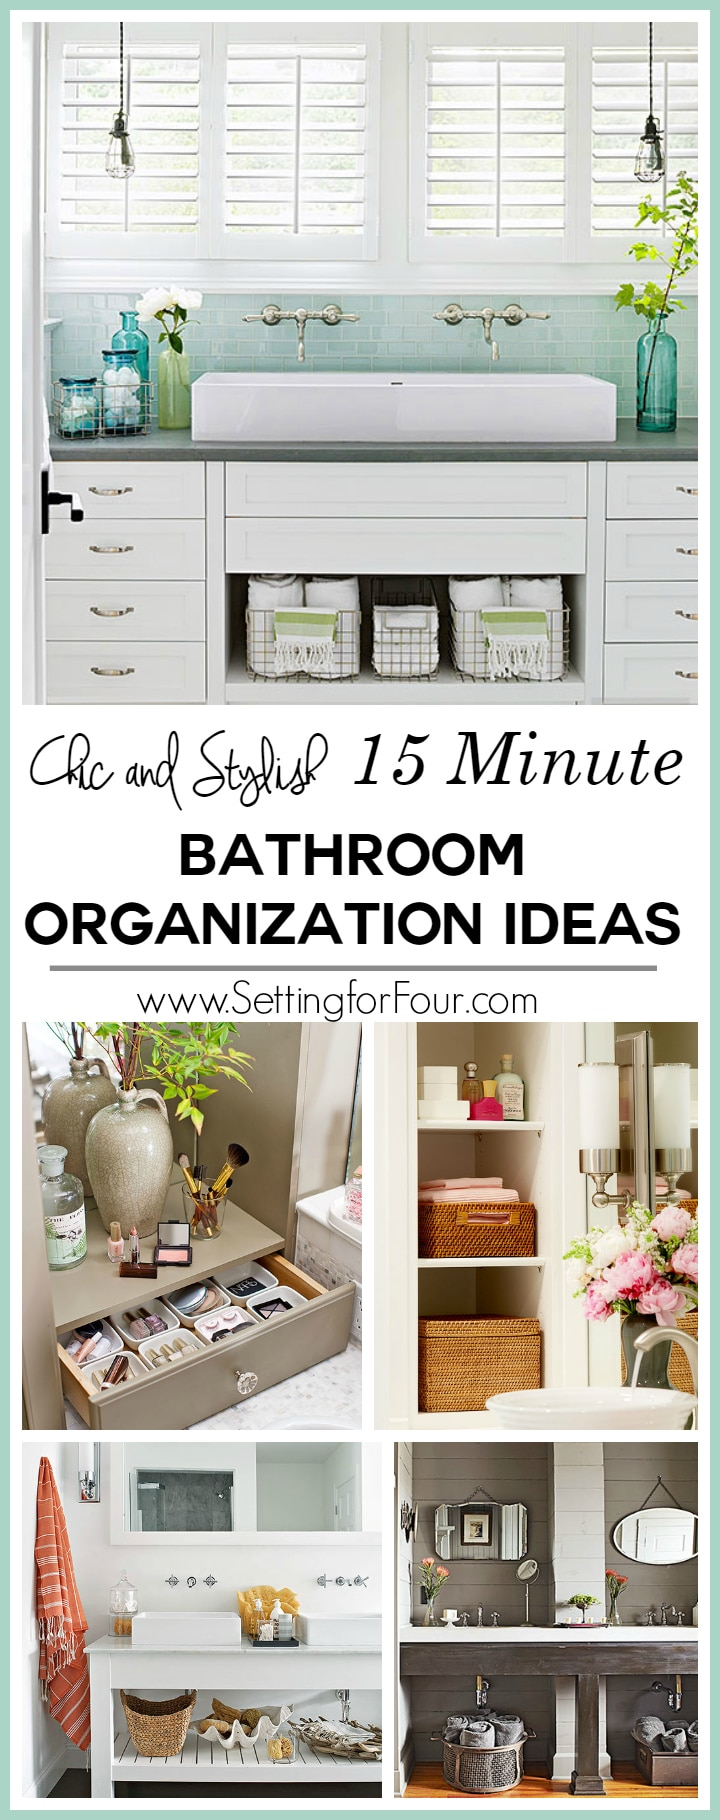 15Minute Bathroom Organization Tips  Setting for Four